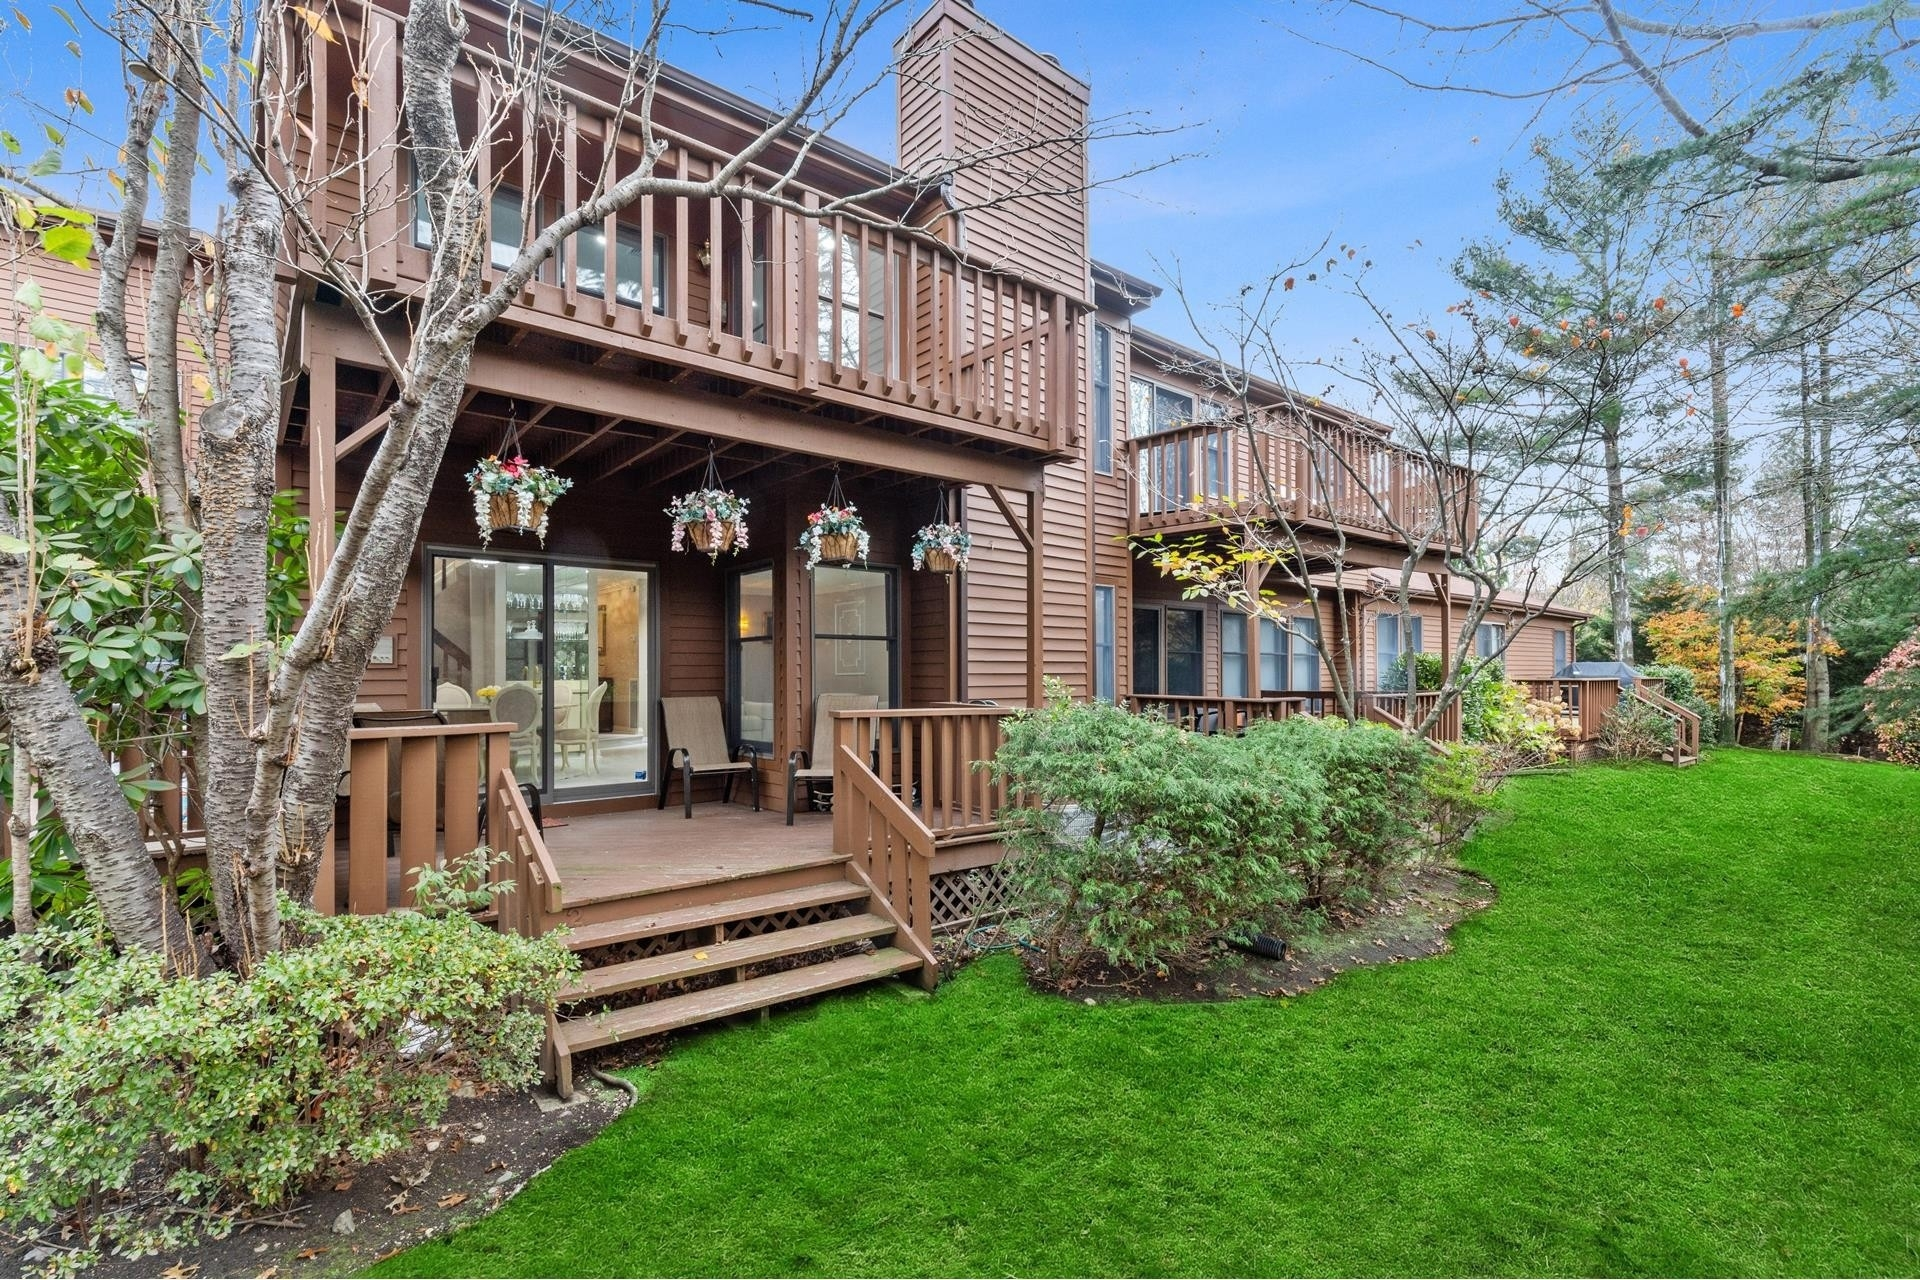 17. Single Family Townhouse for Sale at Jericho, NY 11753